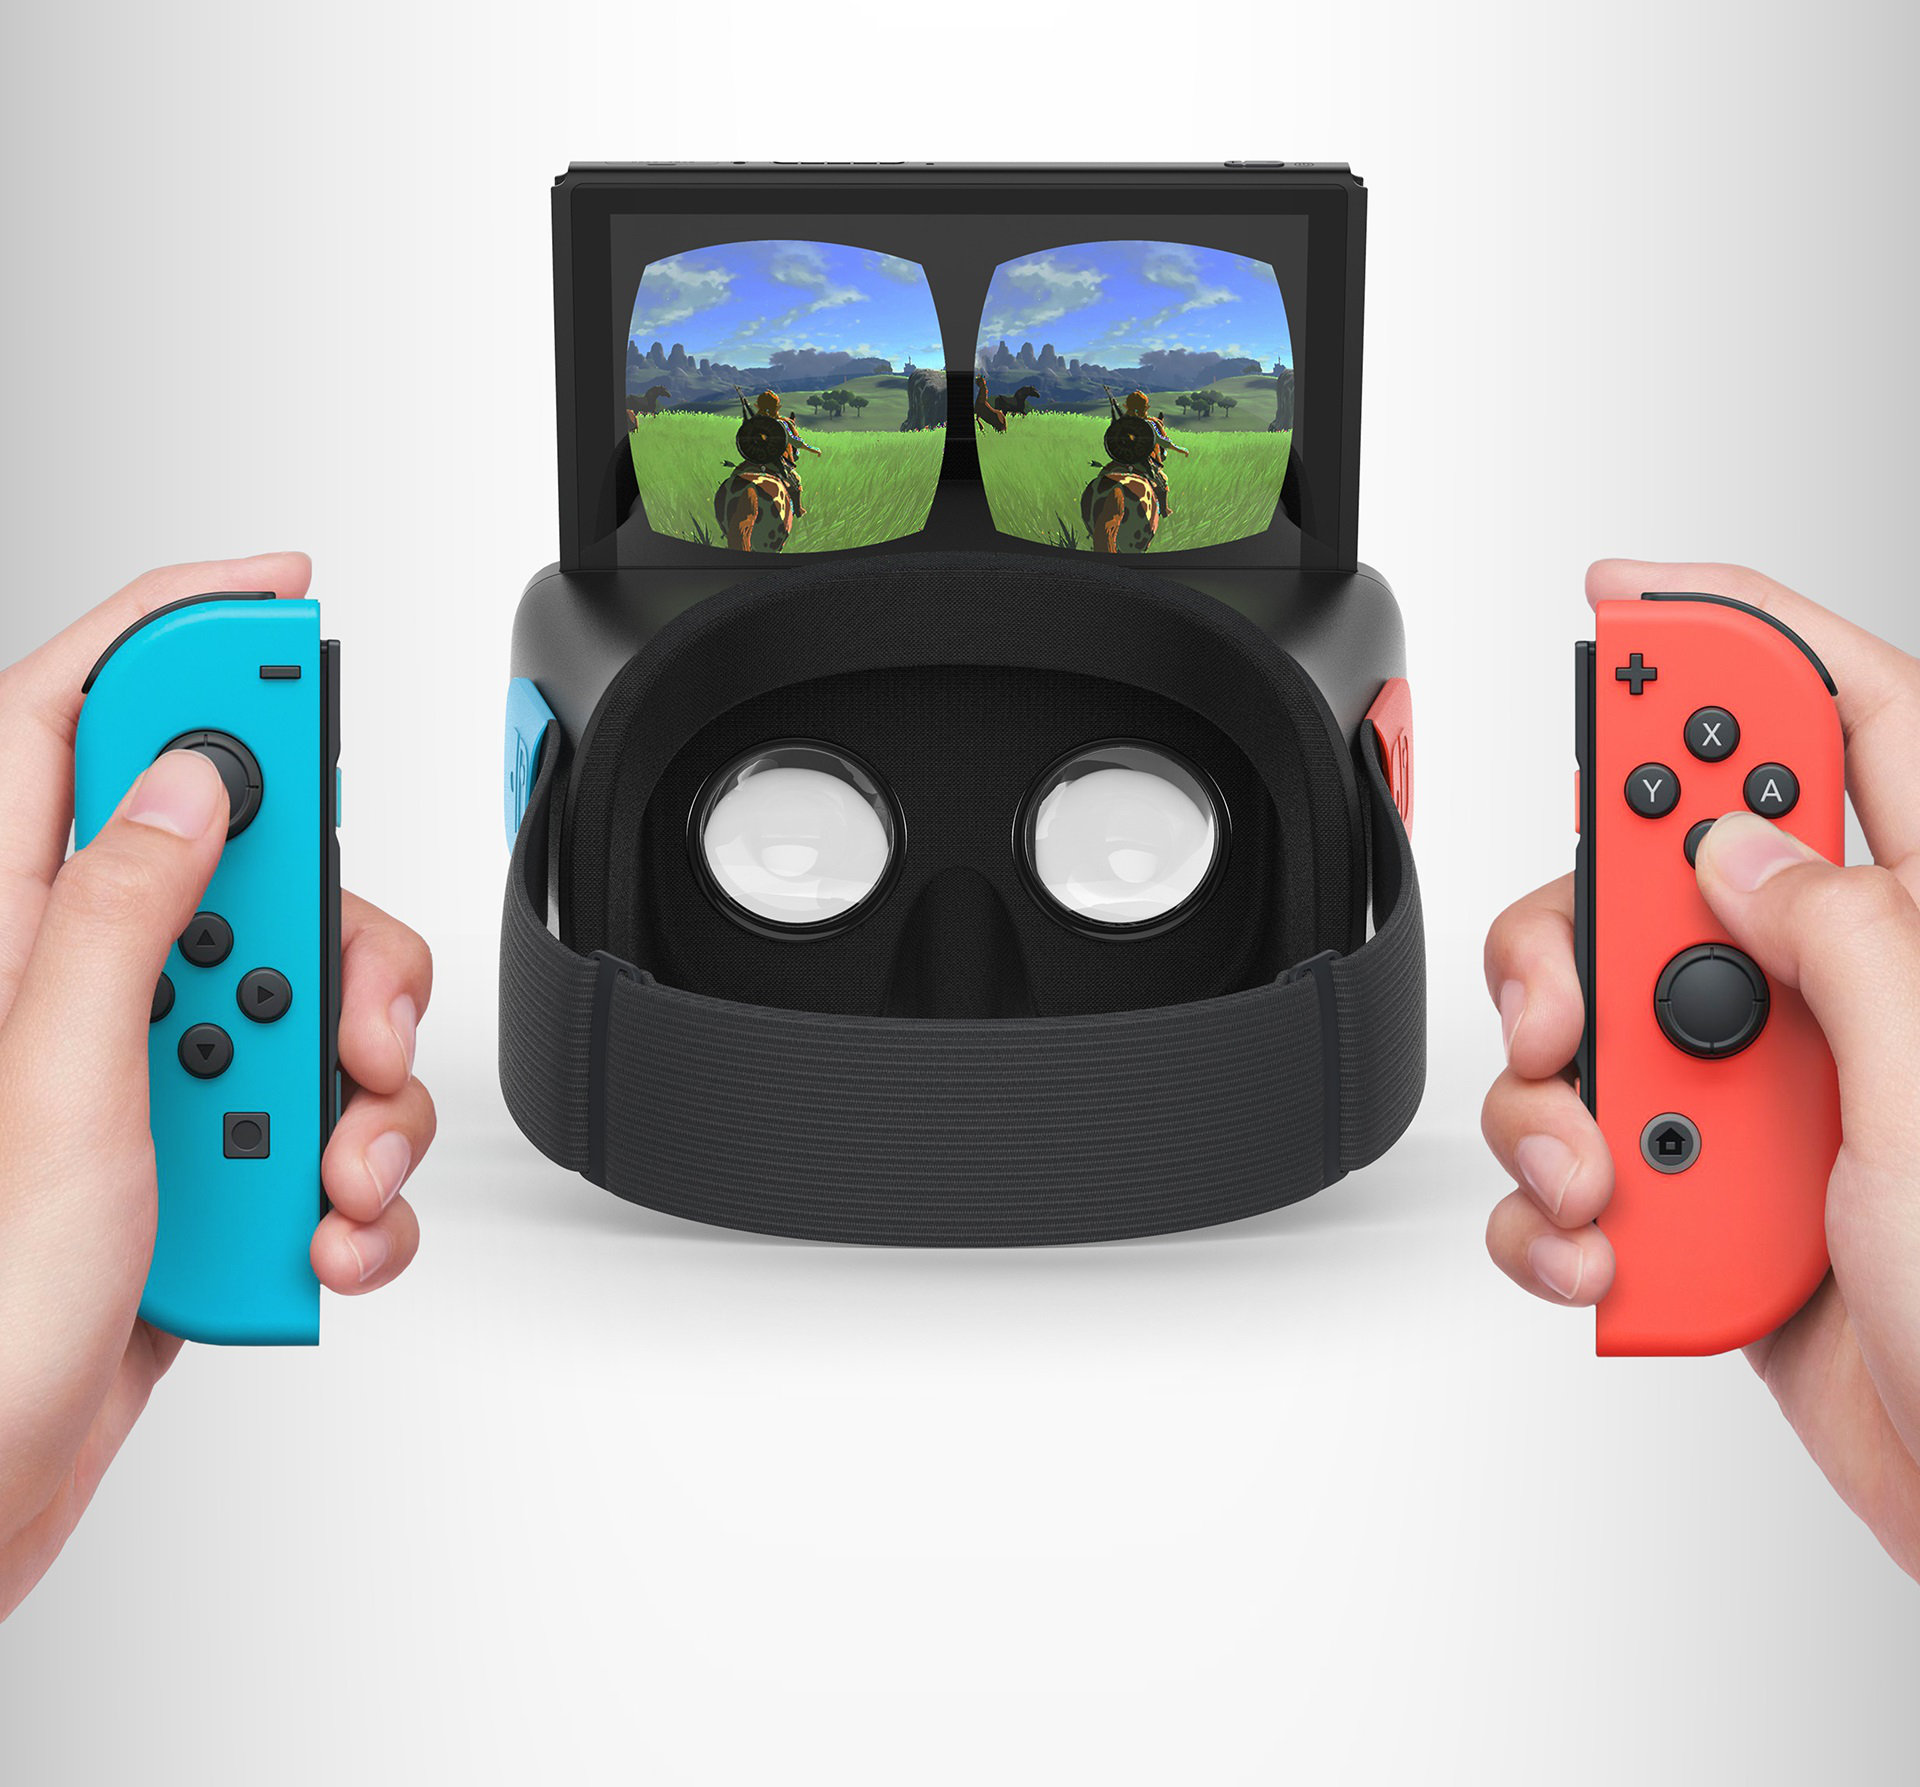 Nintendo Switch VR Headset